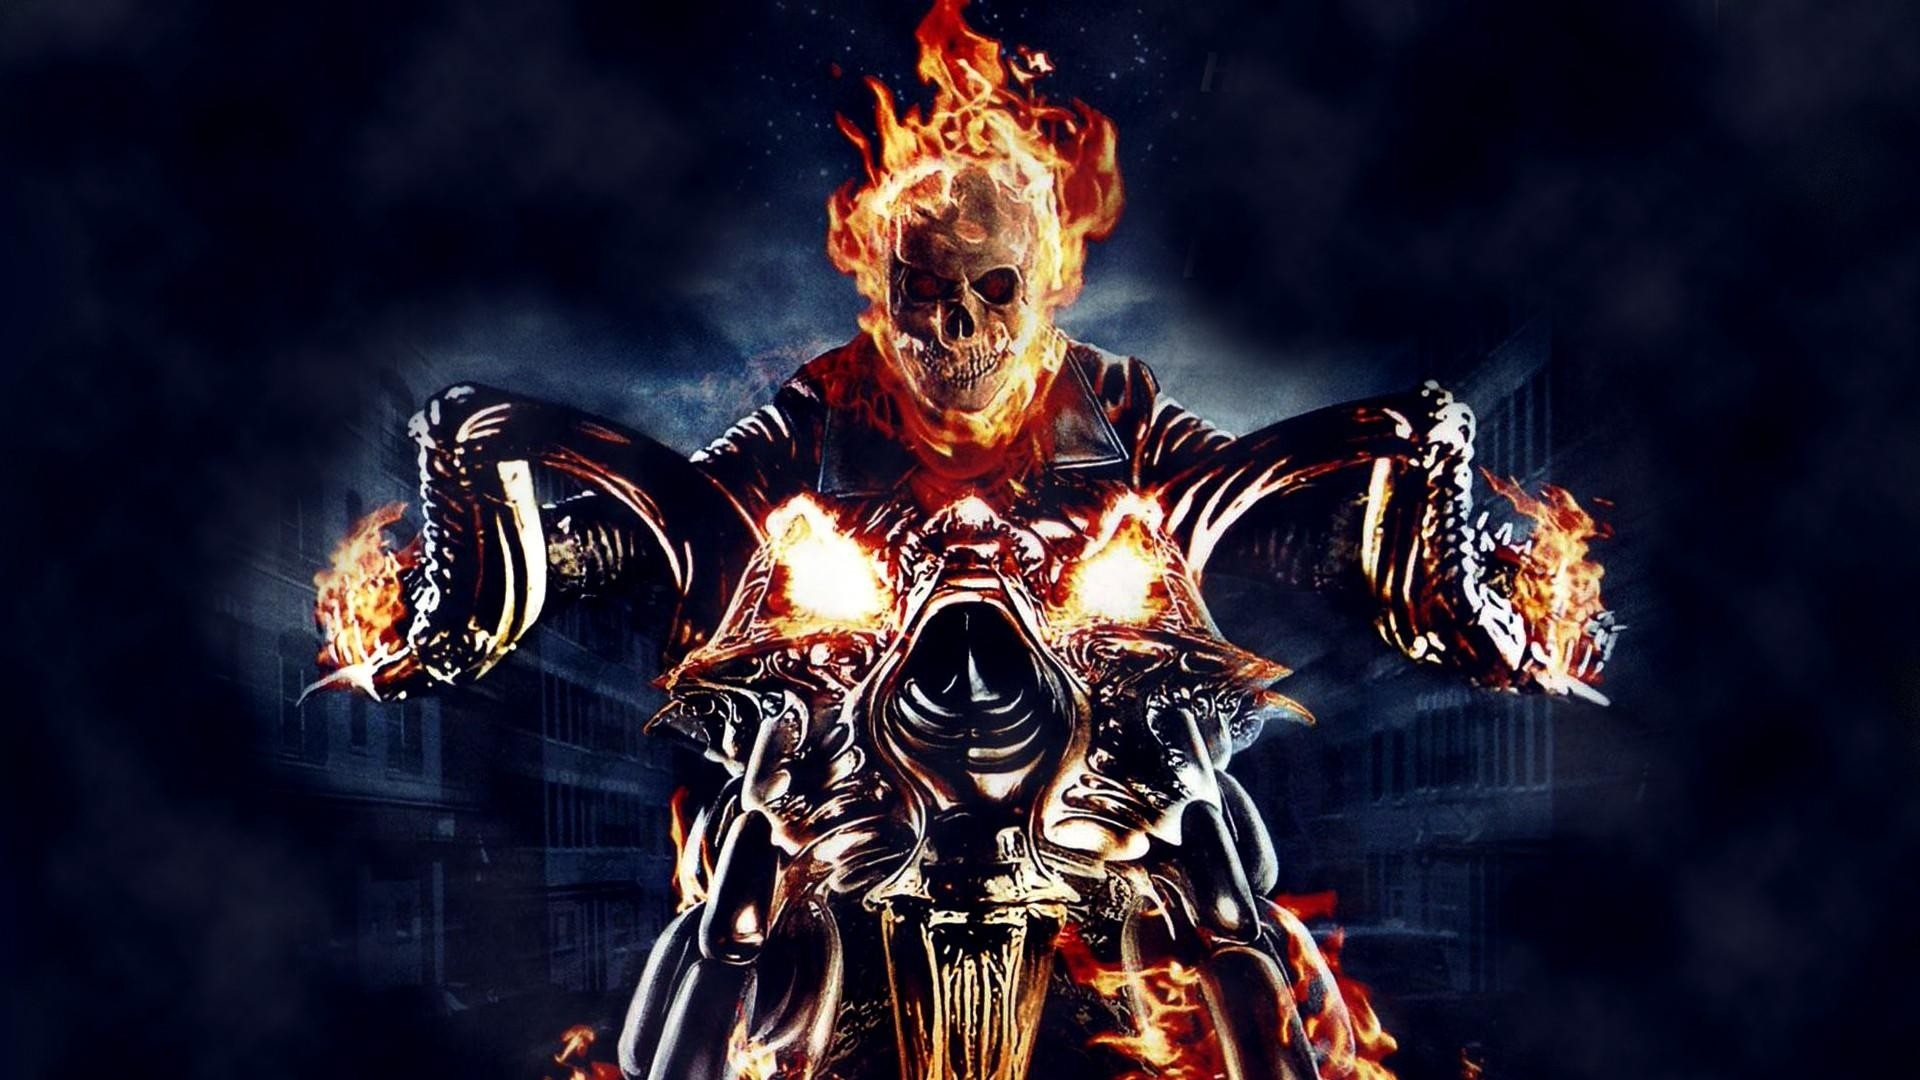 1920x1080 ghost rider, motorcycle, fire